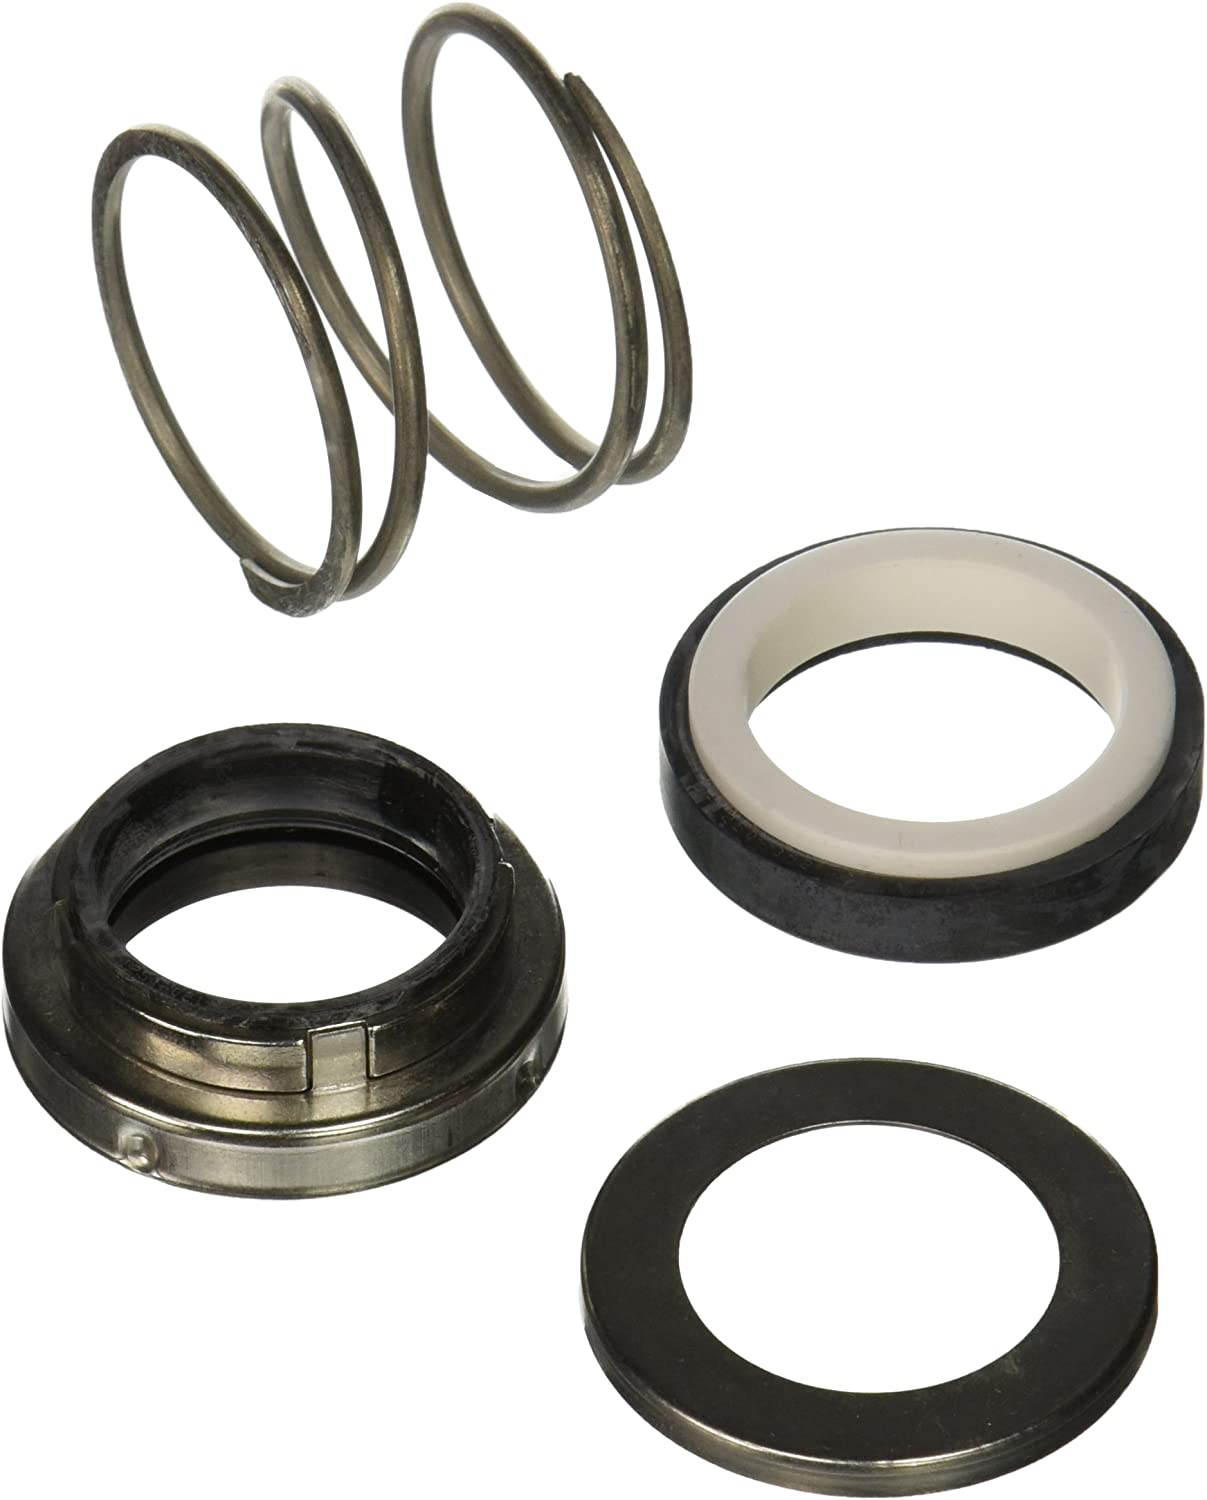 Pentair Regular store S32014 Mechanical Shaft Max 45% OFF Replacement Seal CSP for